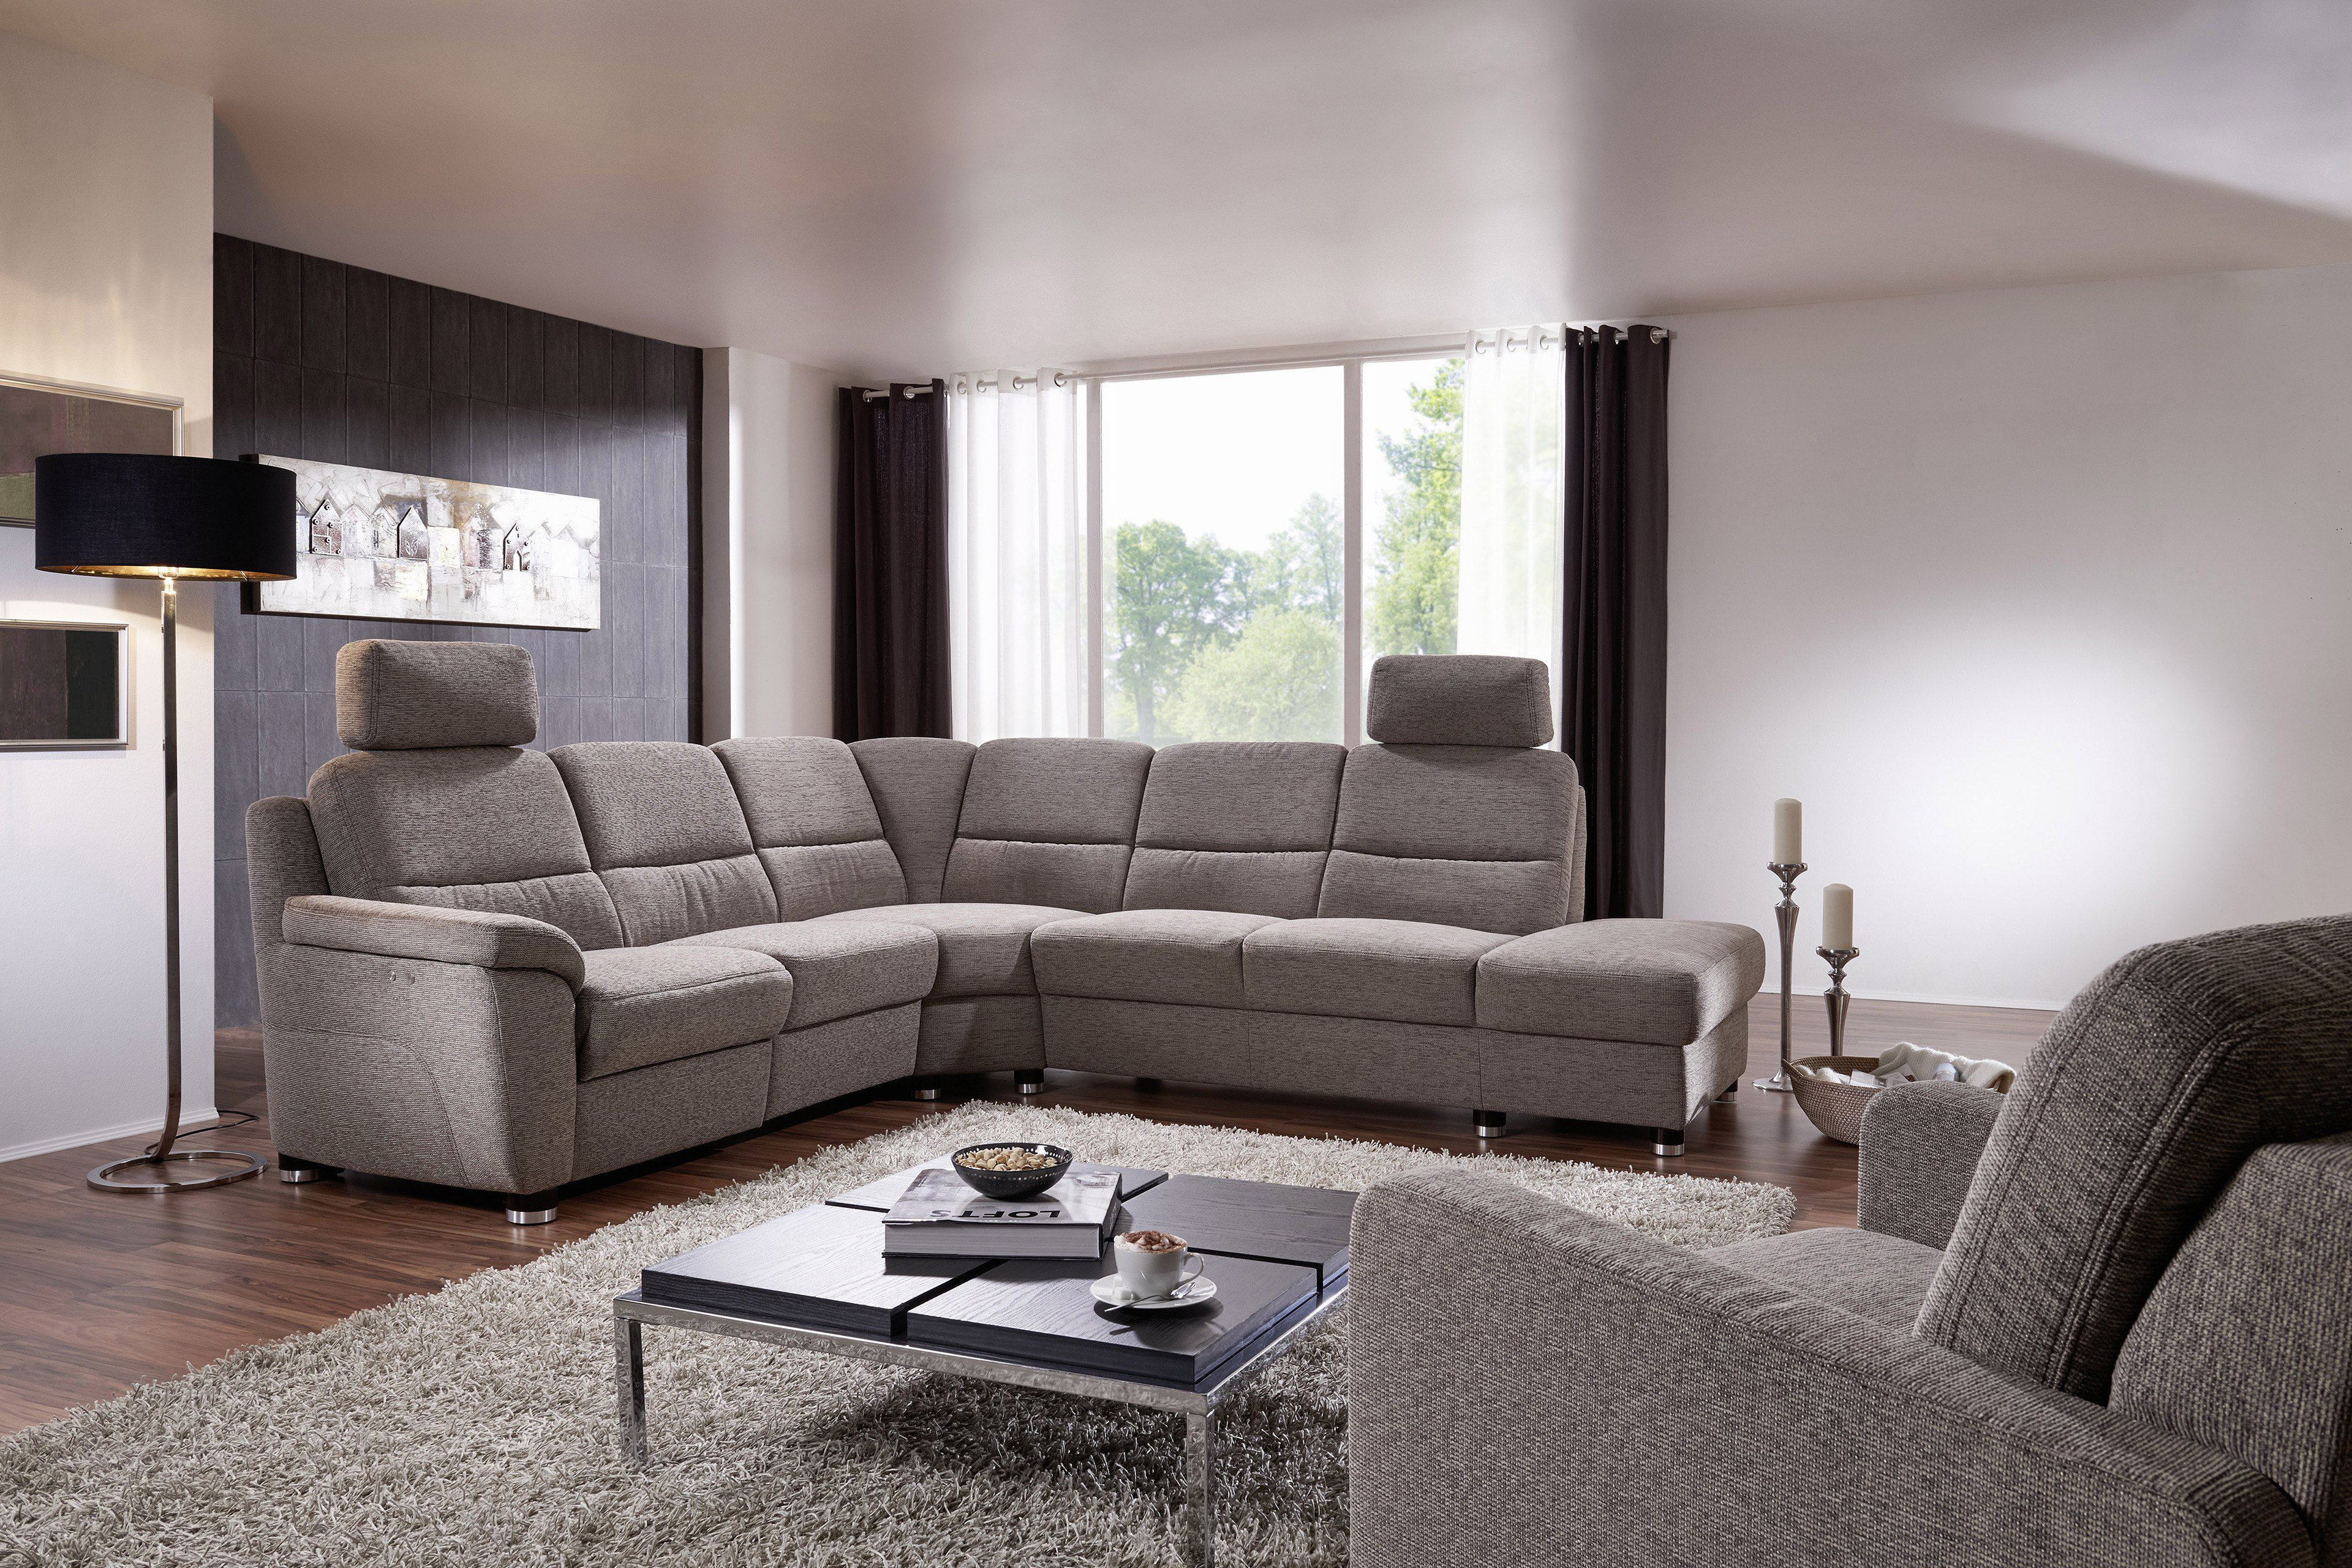 arco polsterm bel dreamer 5006 sofa grau m bel letz ihr online shop. Black Bedroom Furniture Sets. Home Design Ideas